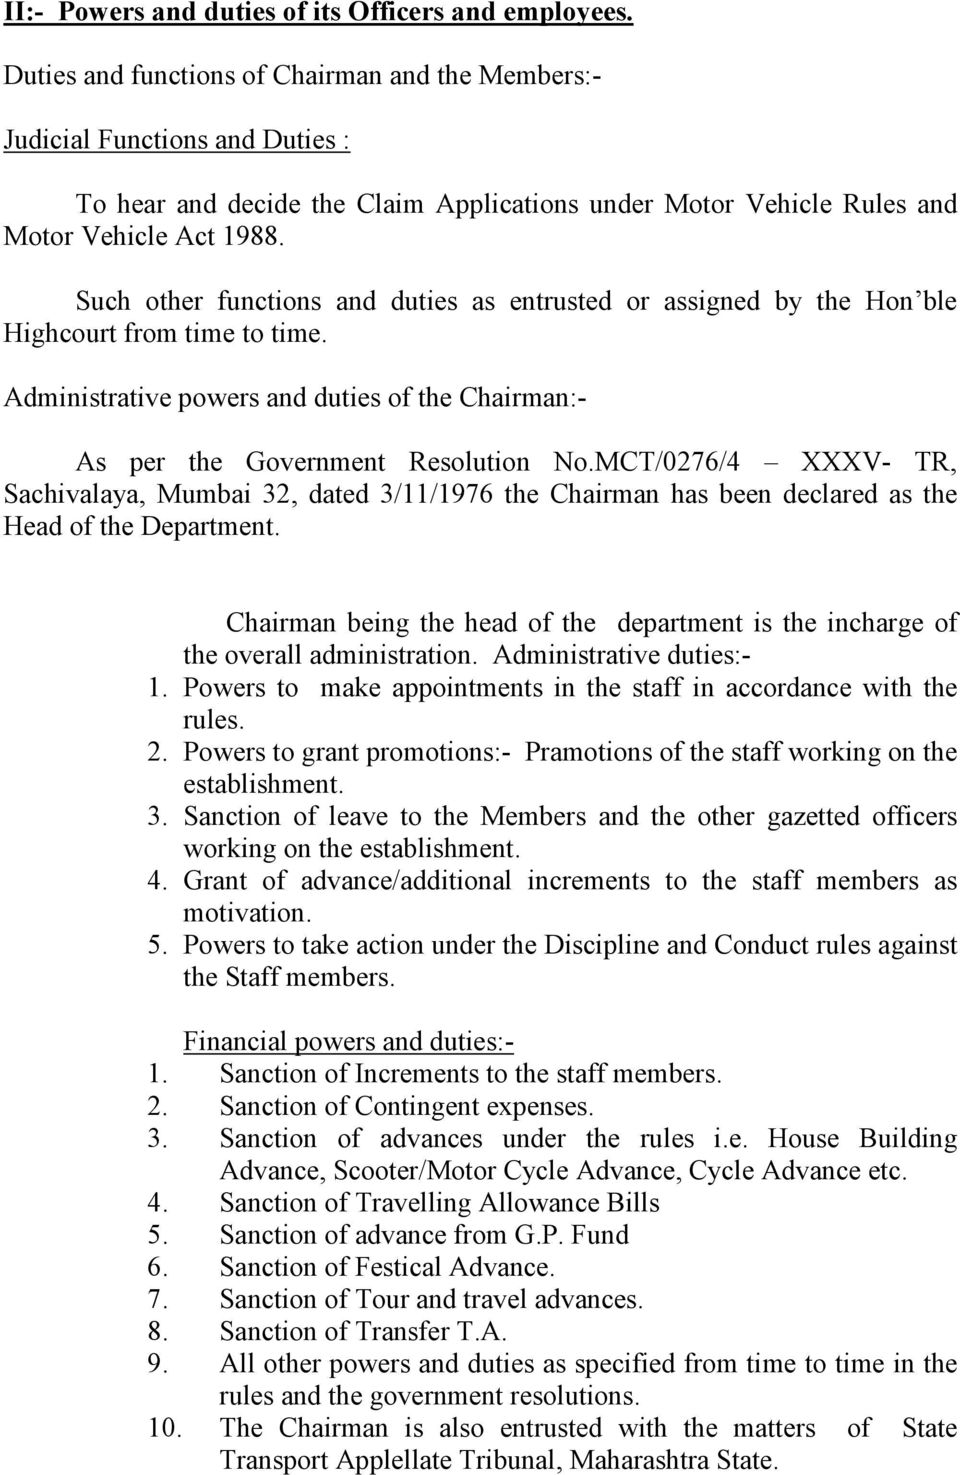 Such other functions and duties as entrusted or assigned by the Hon ble Highcourt from time to time. Administrative powers and duties of the Chairman:- As per the Government Resolution No.